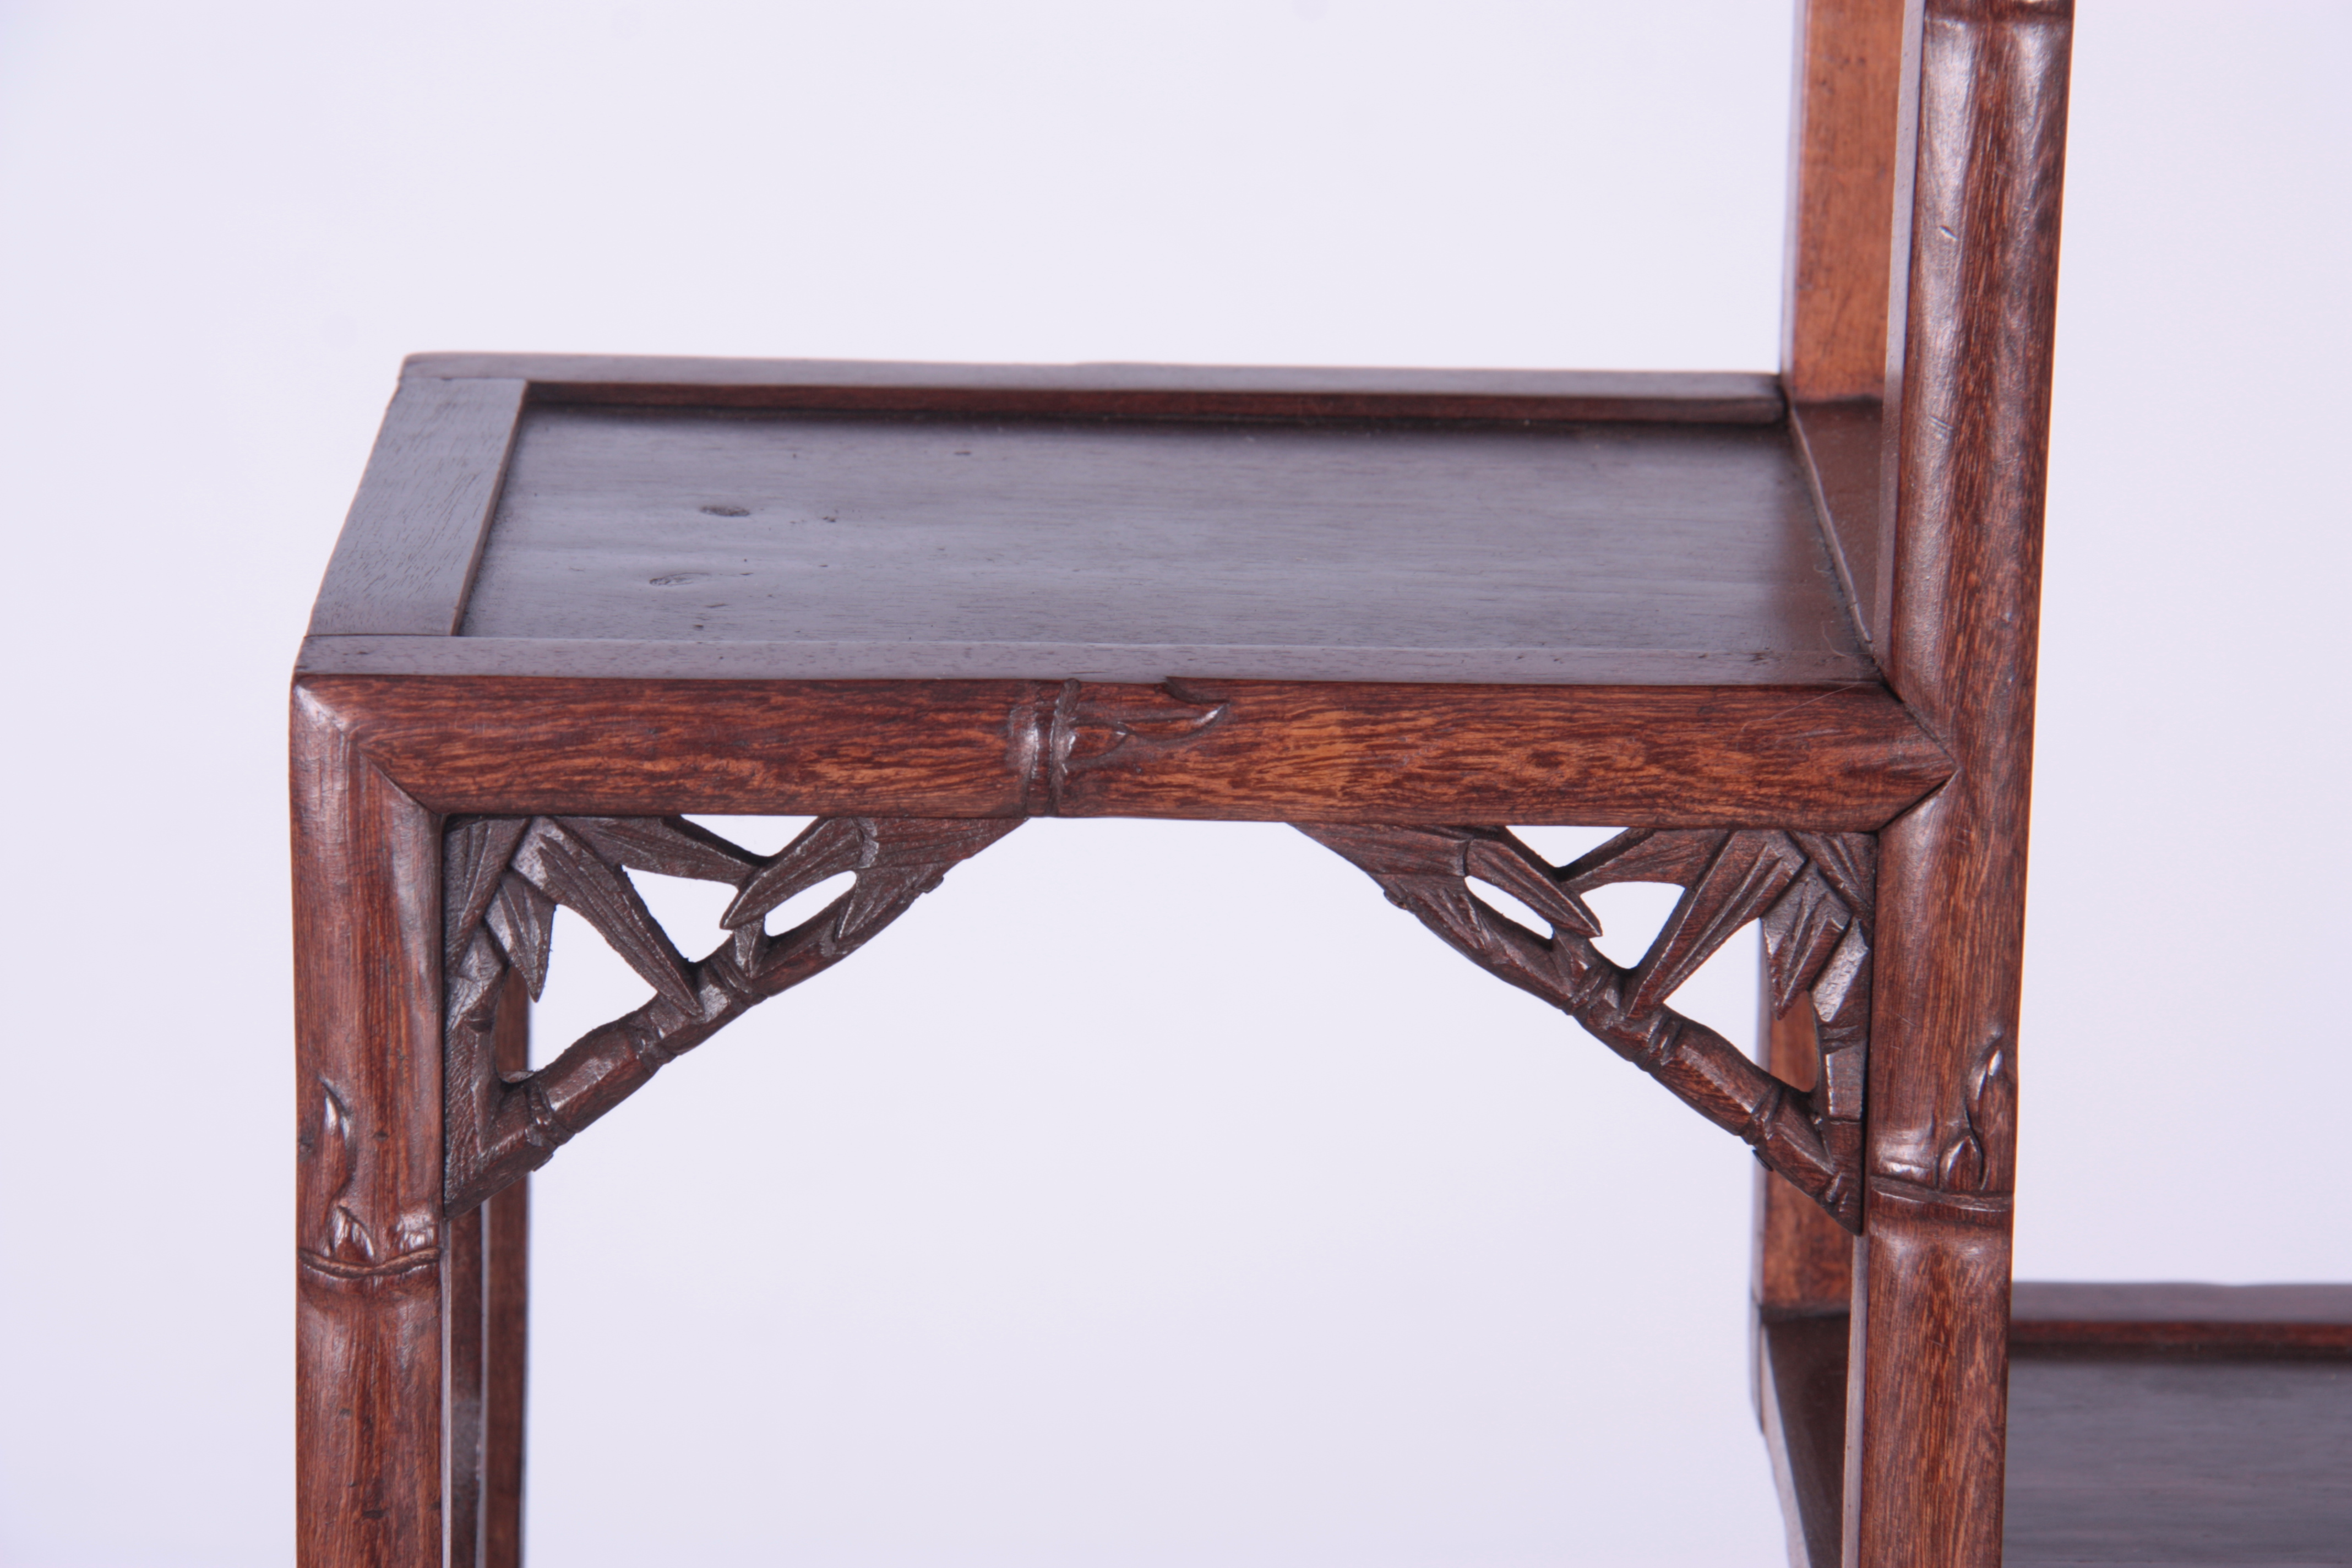 A 19TH CENTURY CHINESE CHICKEN WING WOOD STANDING WHATNOT with a faux bamboo frame and leaf carved - Image 3 of 9